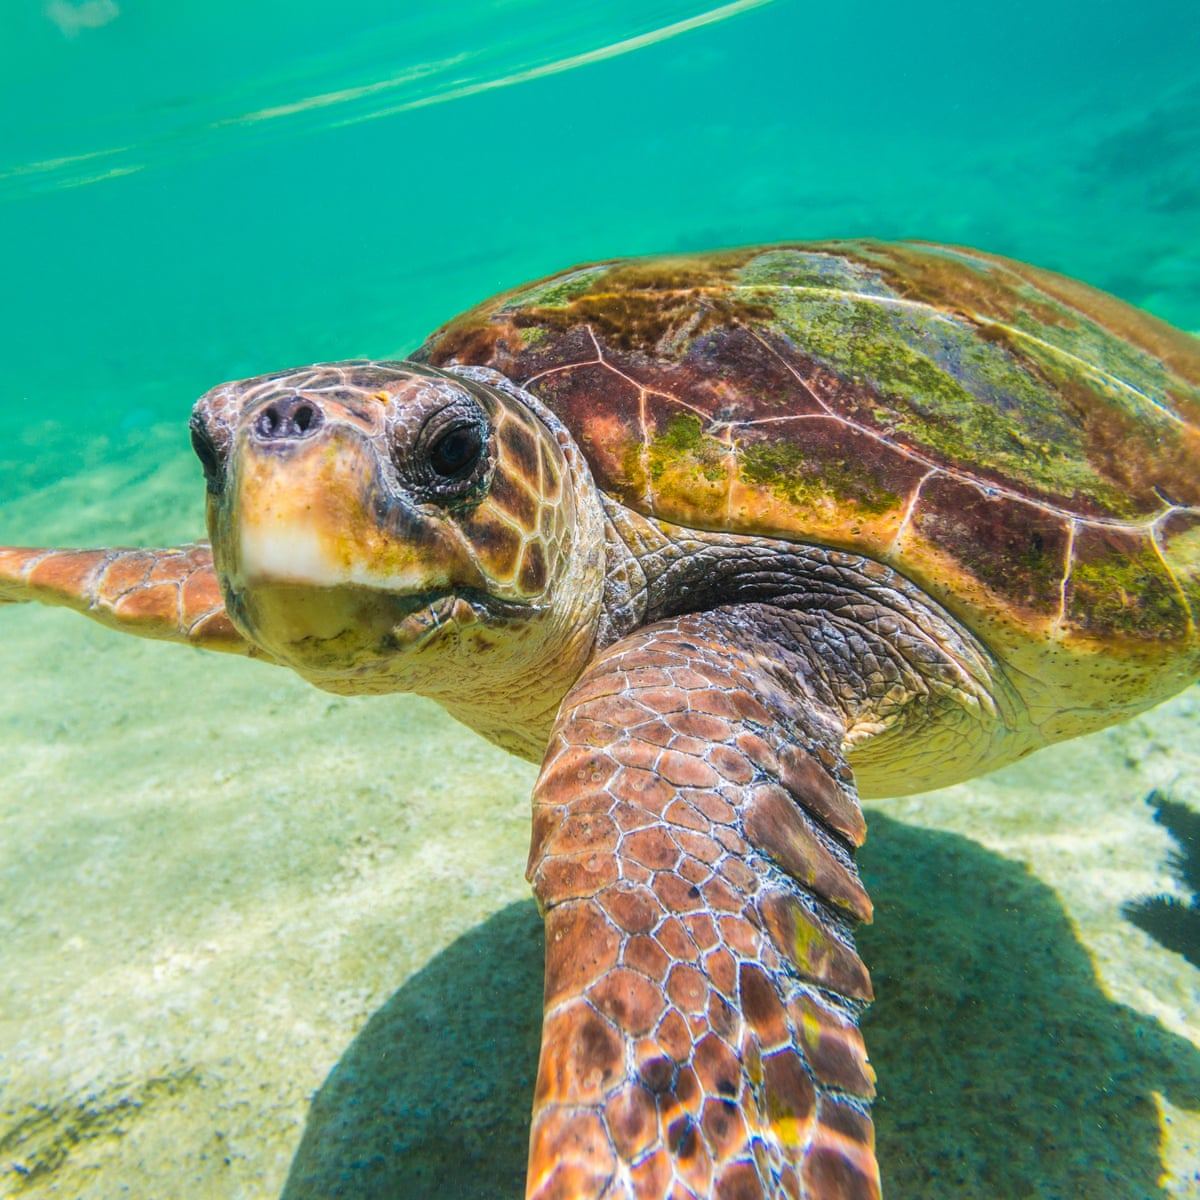 Pandemic gives breathing room to endangered sea turtles | Marine life | The  Guardian